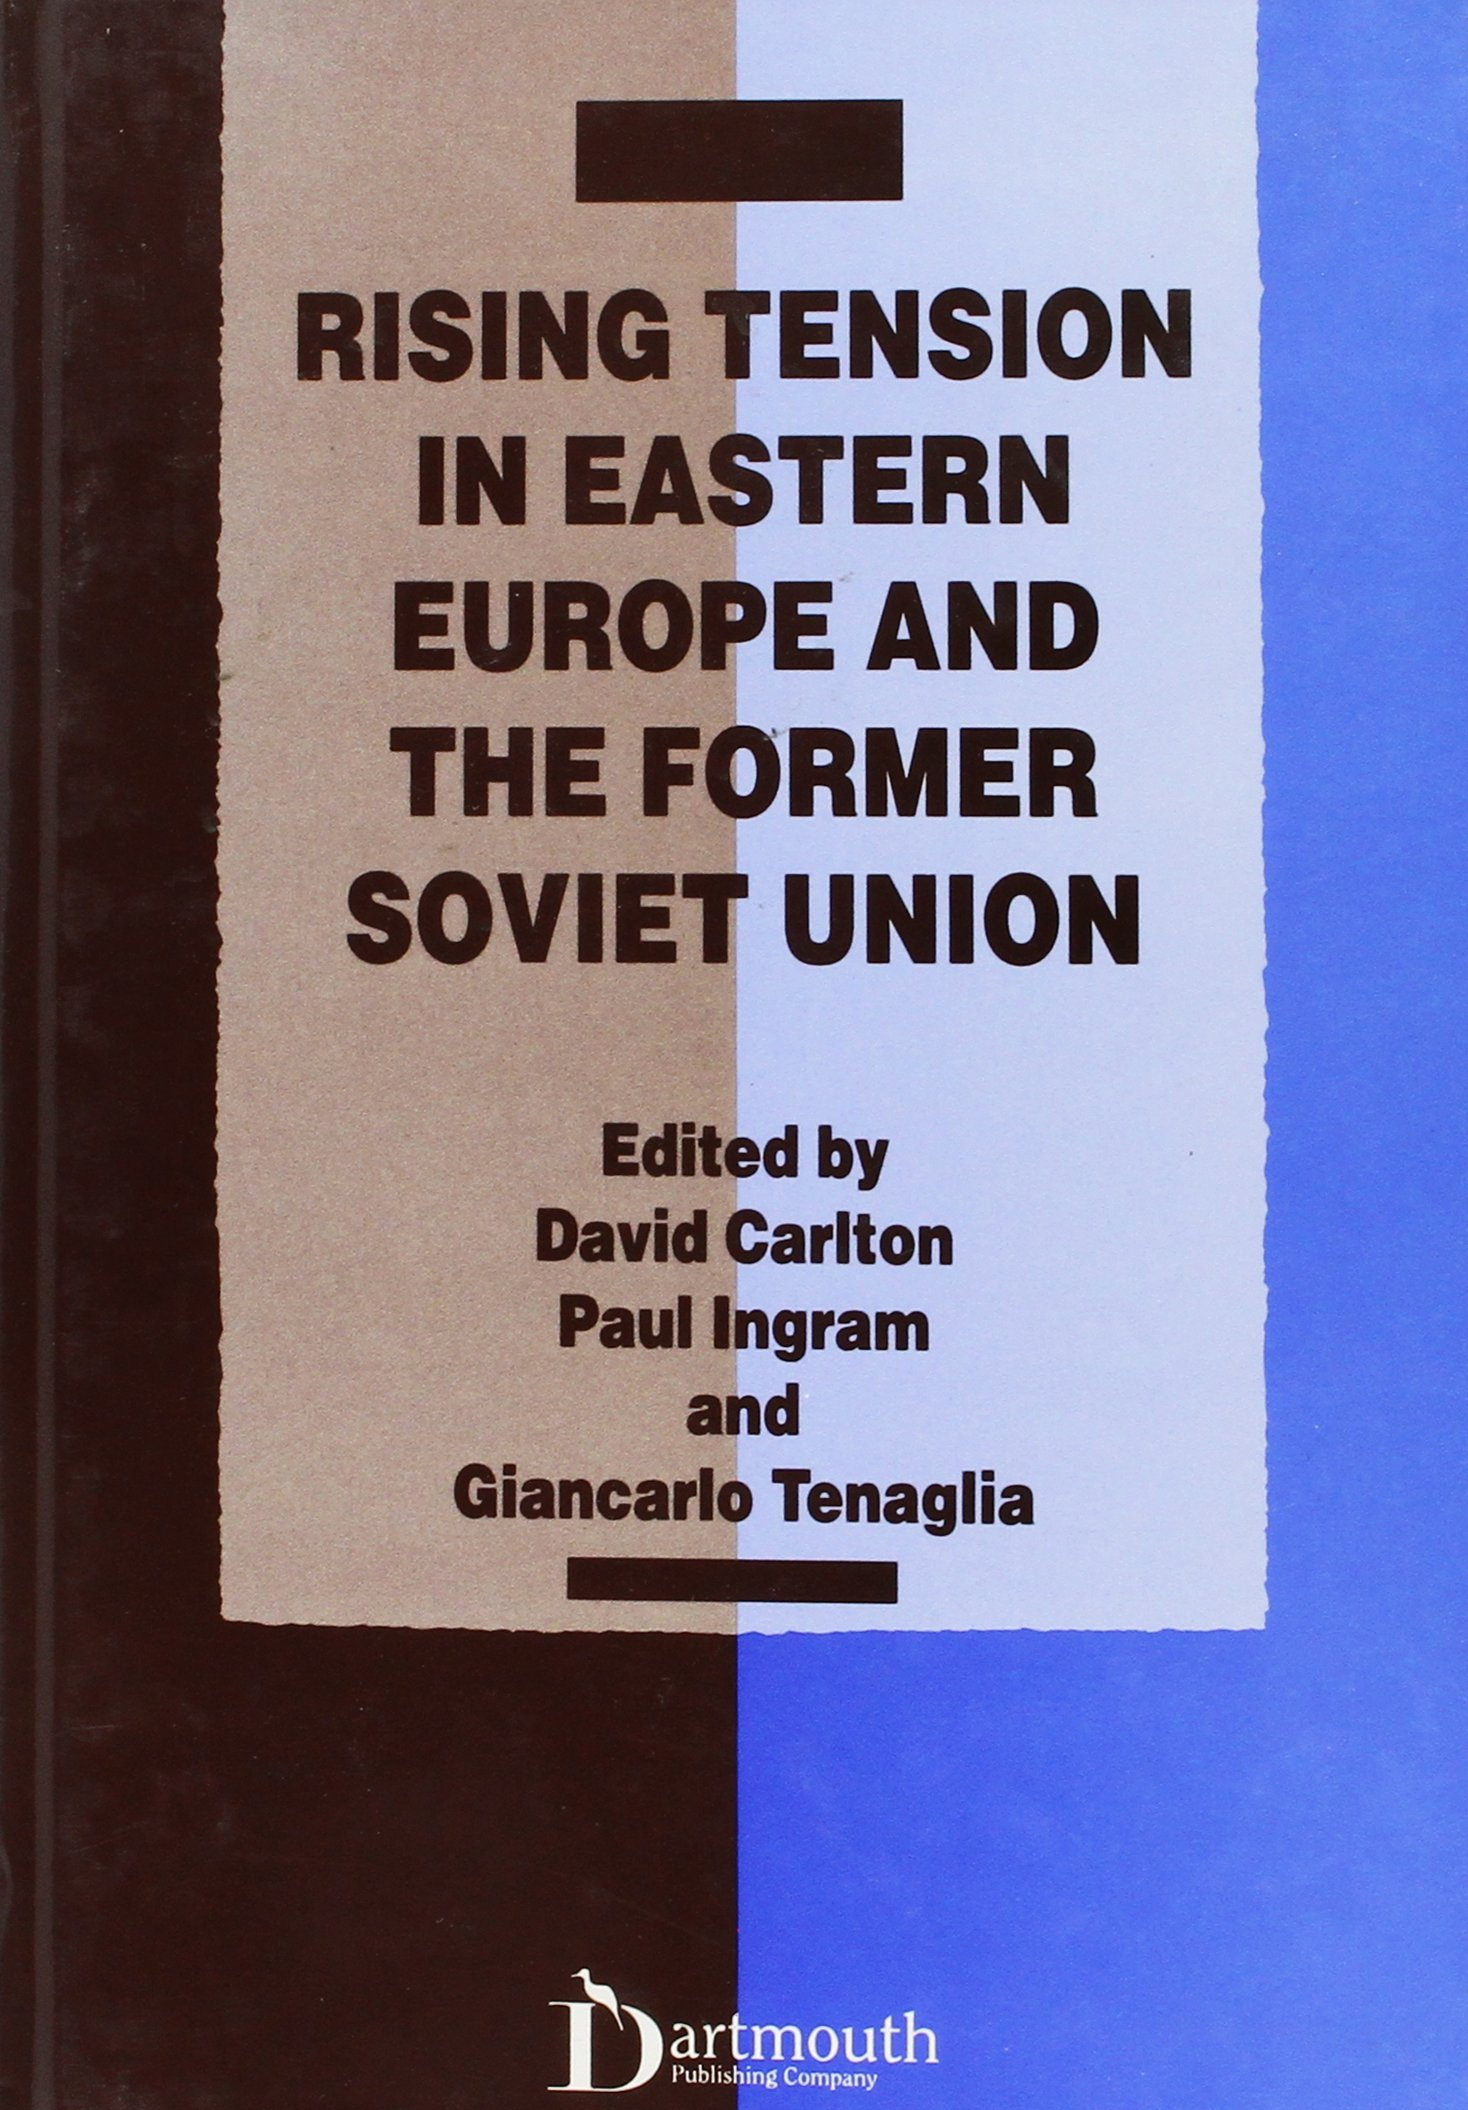 Cover Book - Rising Tension in Eastern Europe and the Former Soviet Union